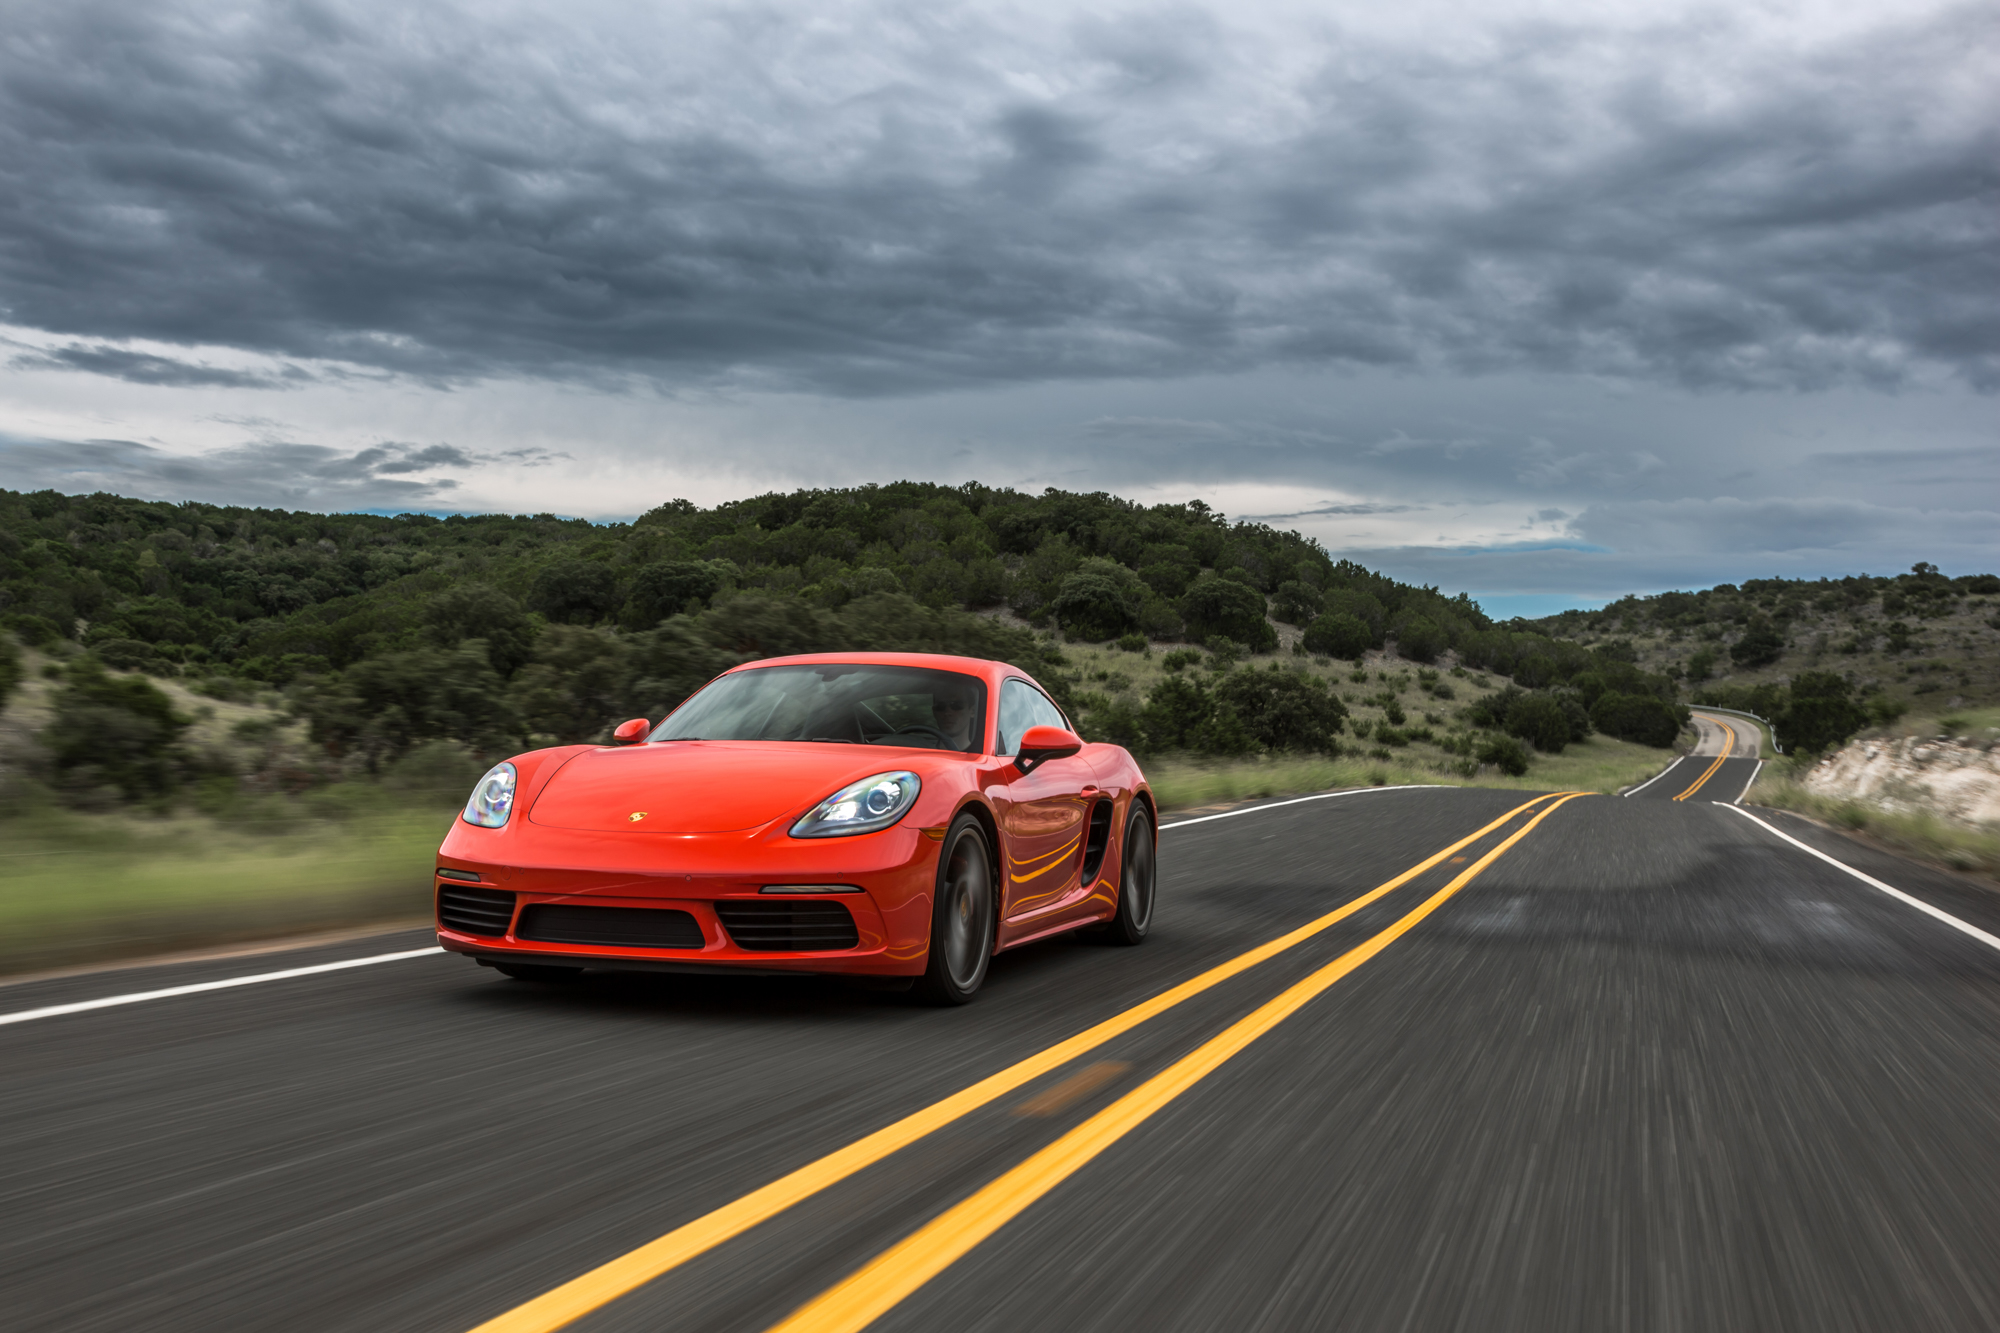 The Porsche 718 Boxster S And Cayman Racing Technology Meets Road